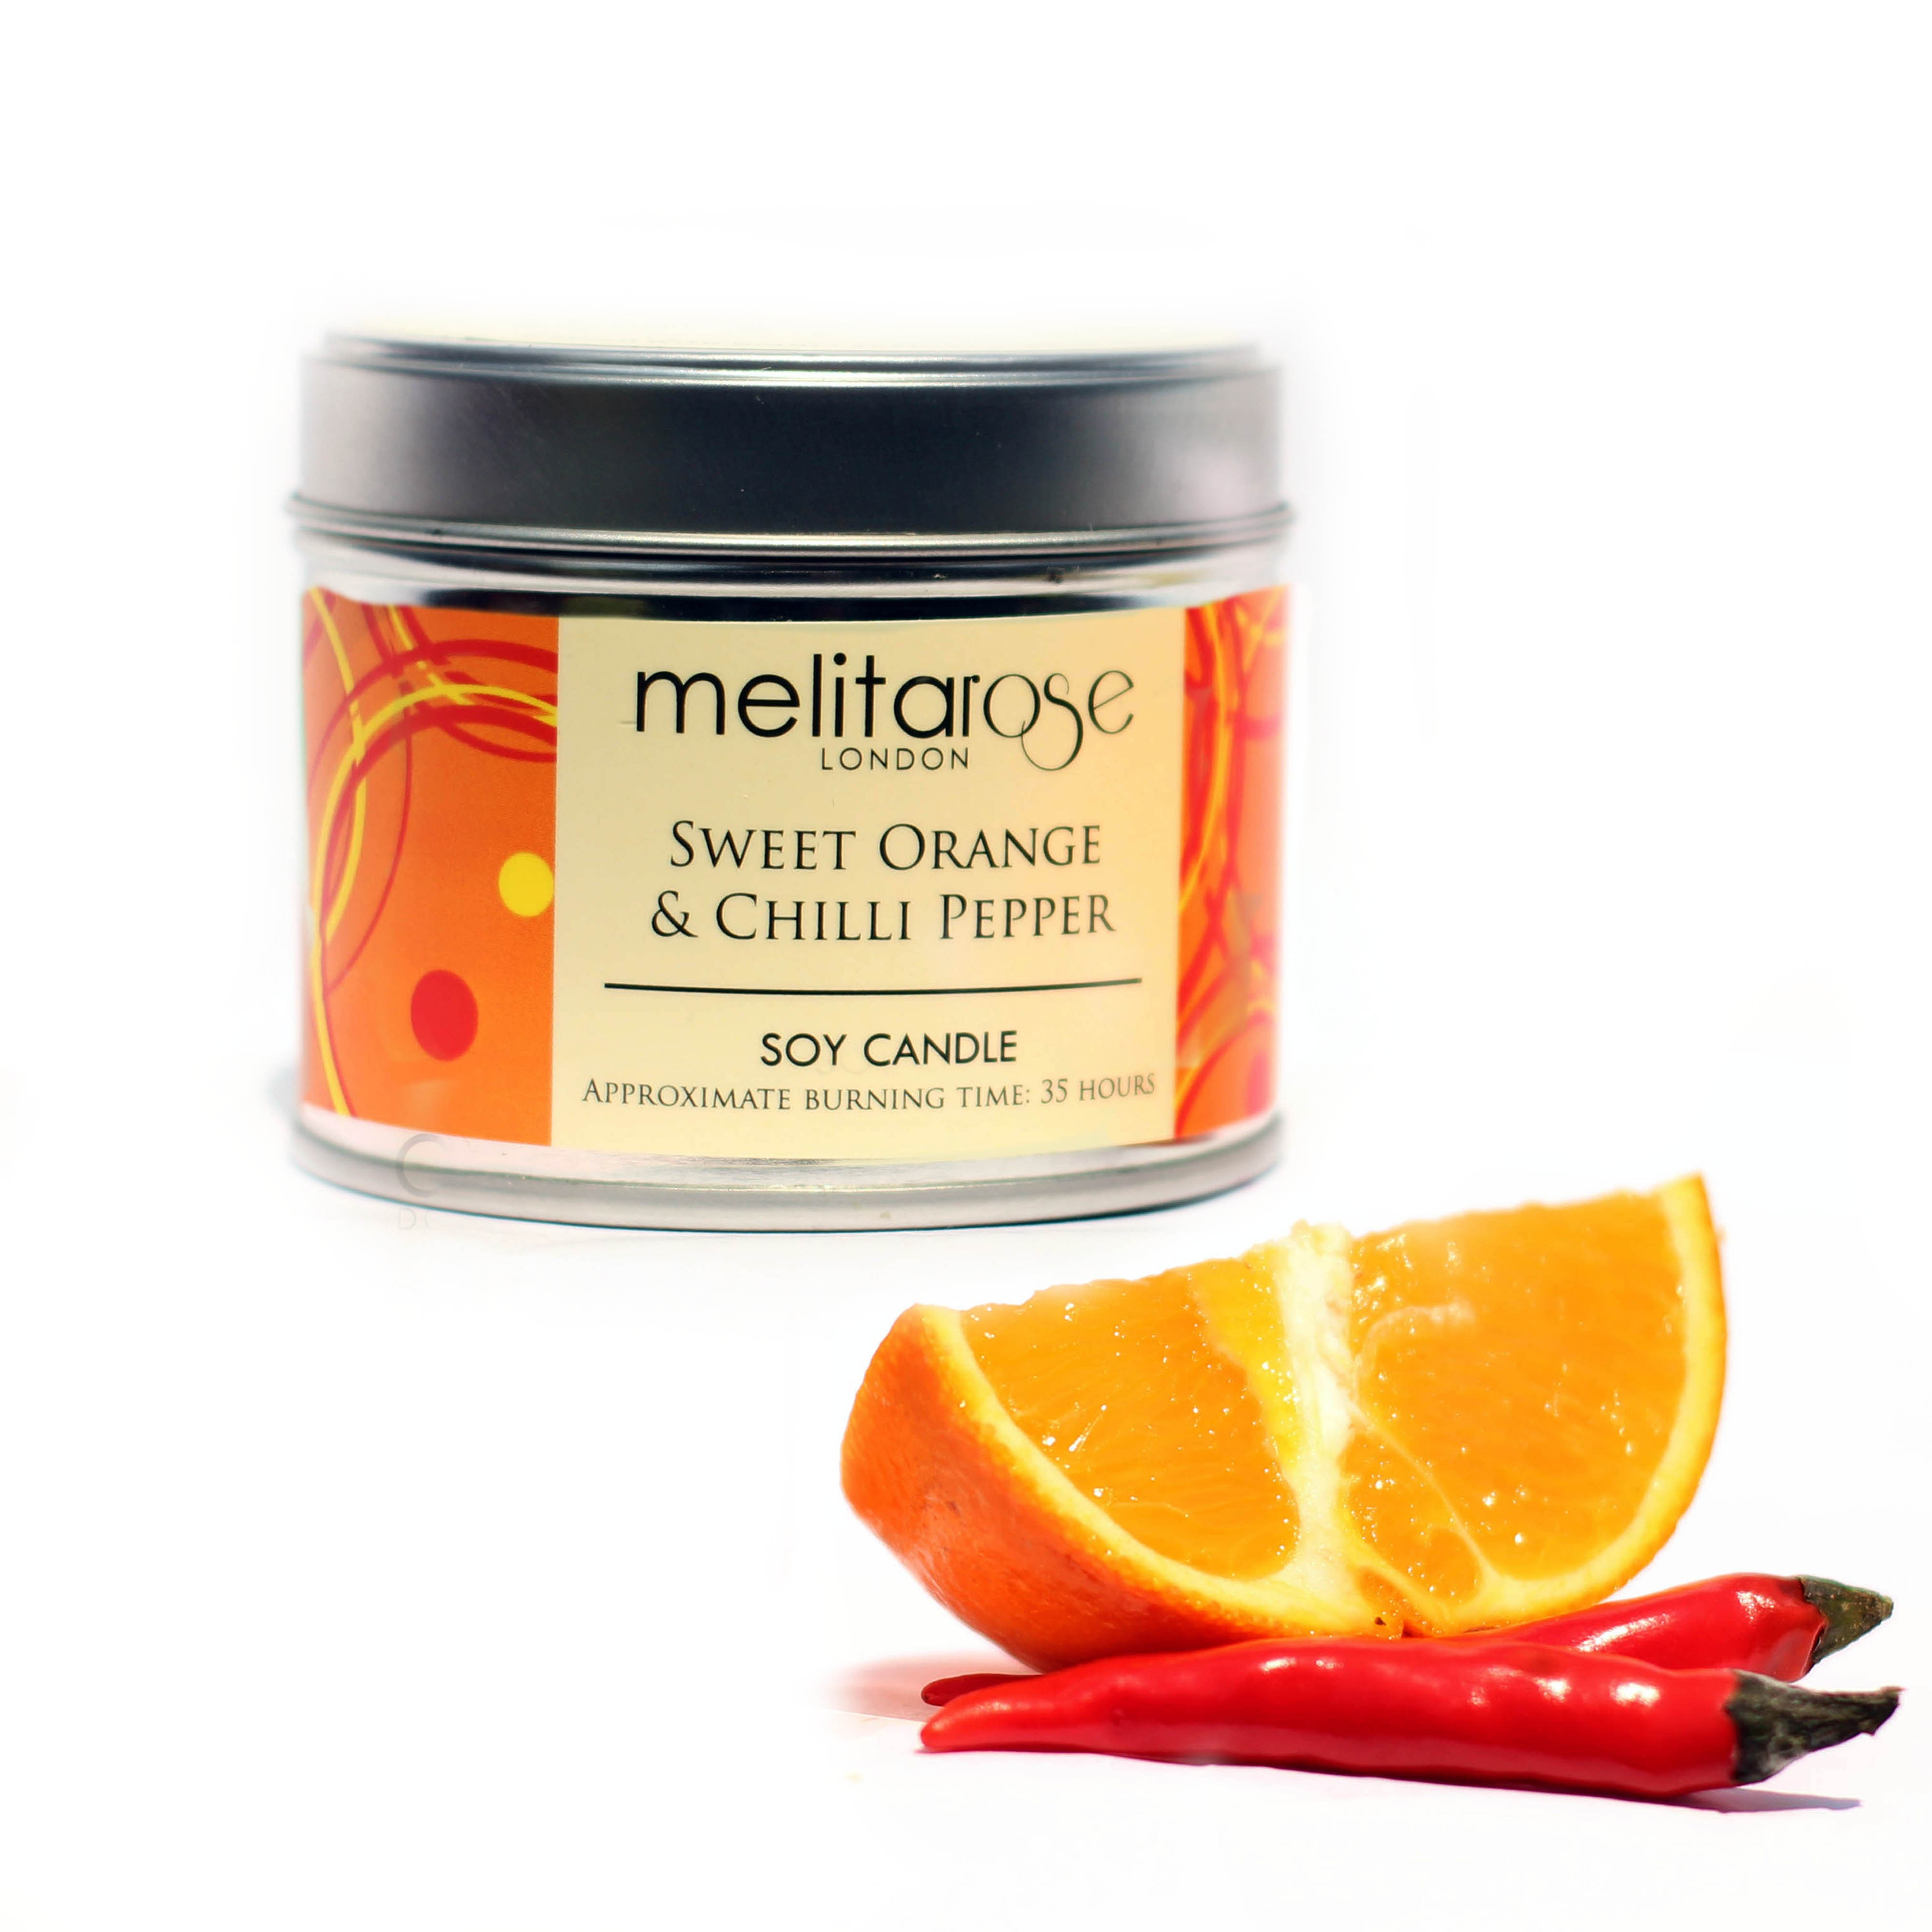 Sweet Orange & Chilli Pepper